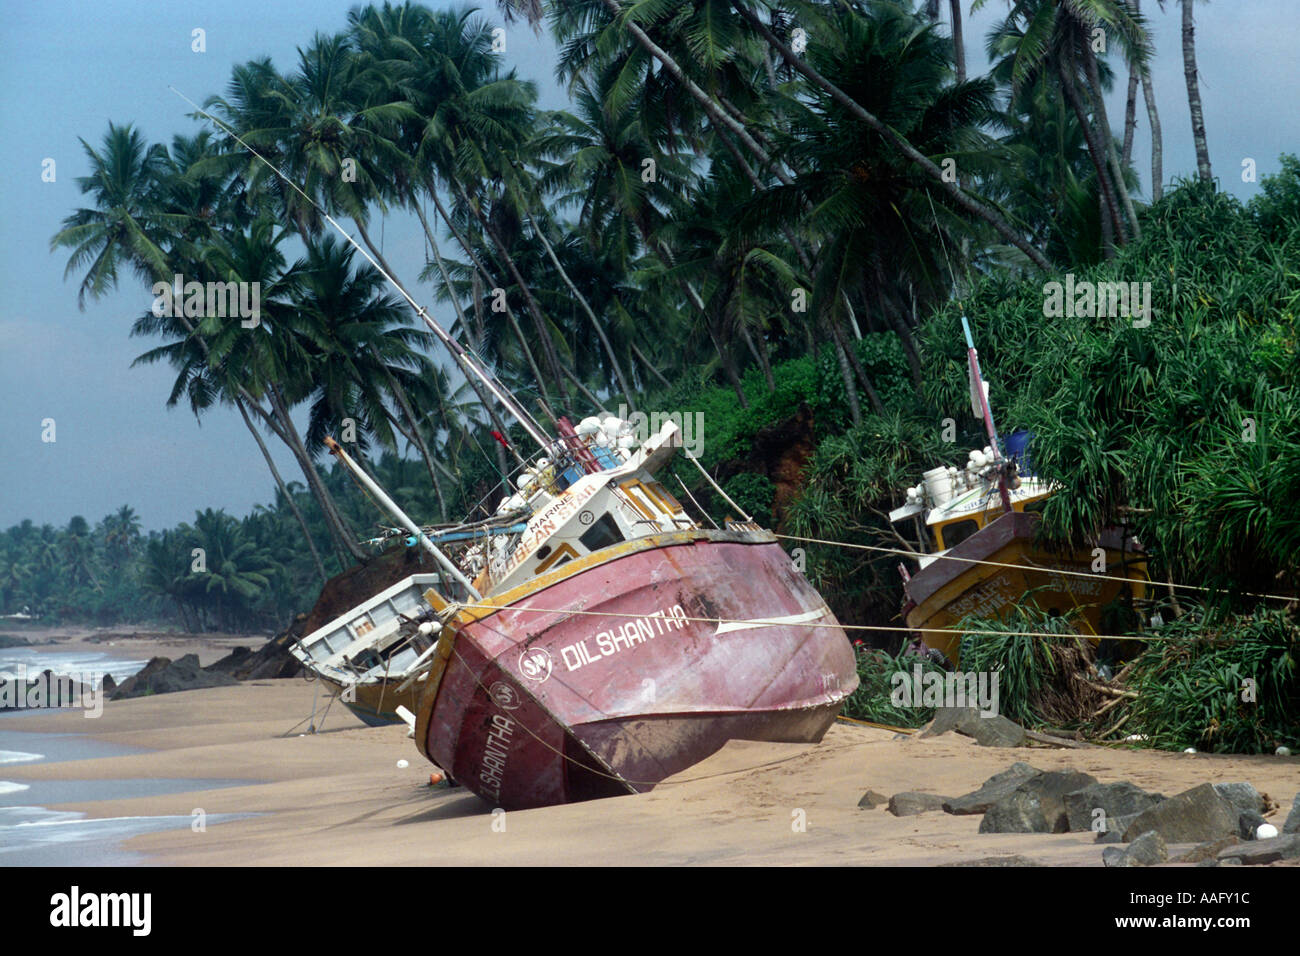 Images from the aftermath of the boxing day tsunami in Sri Lanka on the Indian Ocean, 2004 - Stock Image